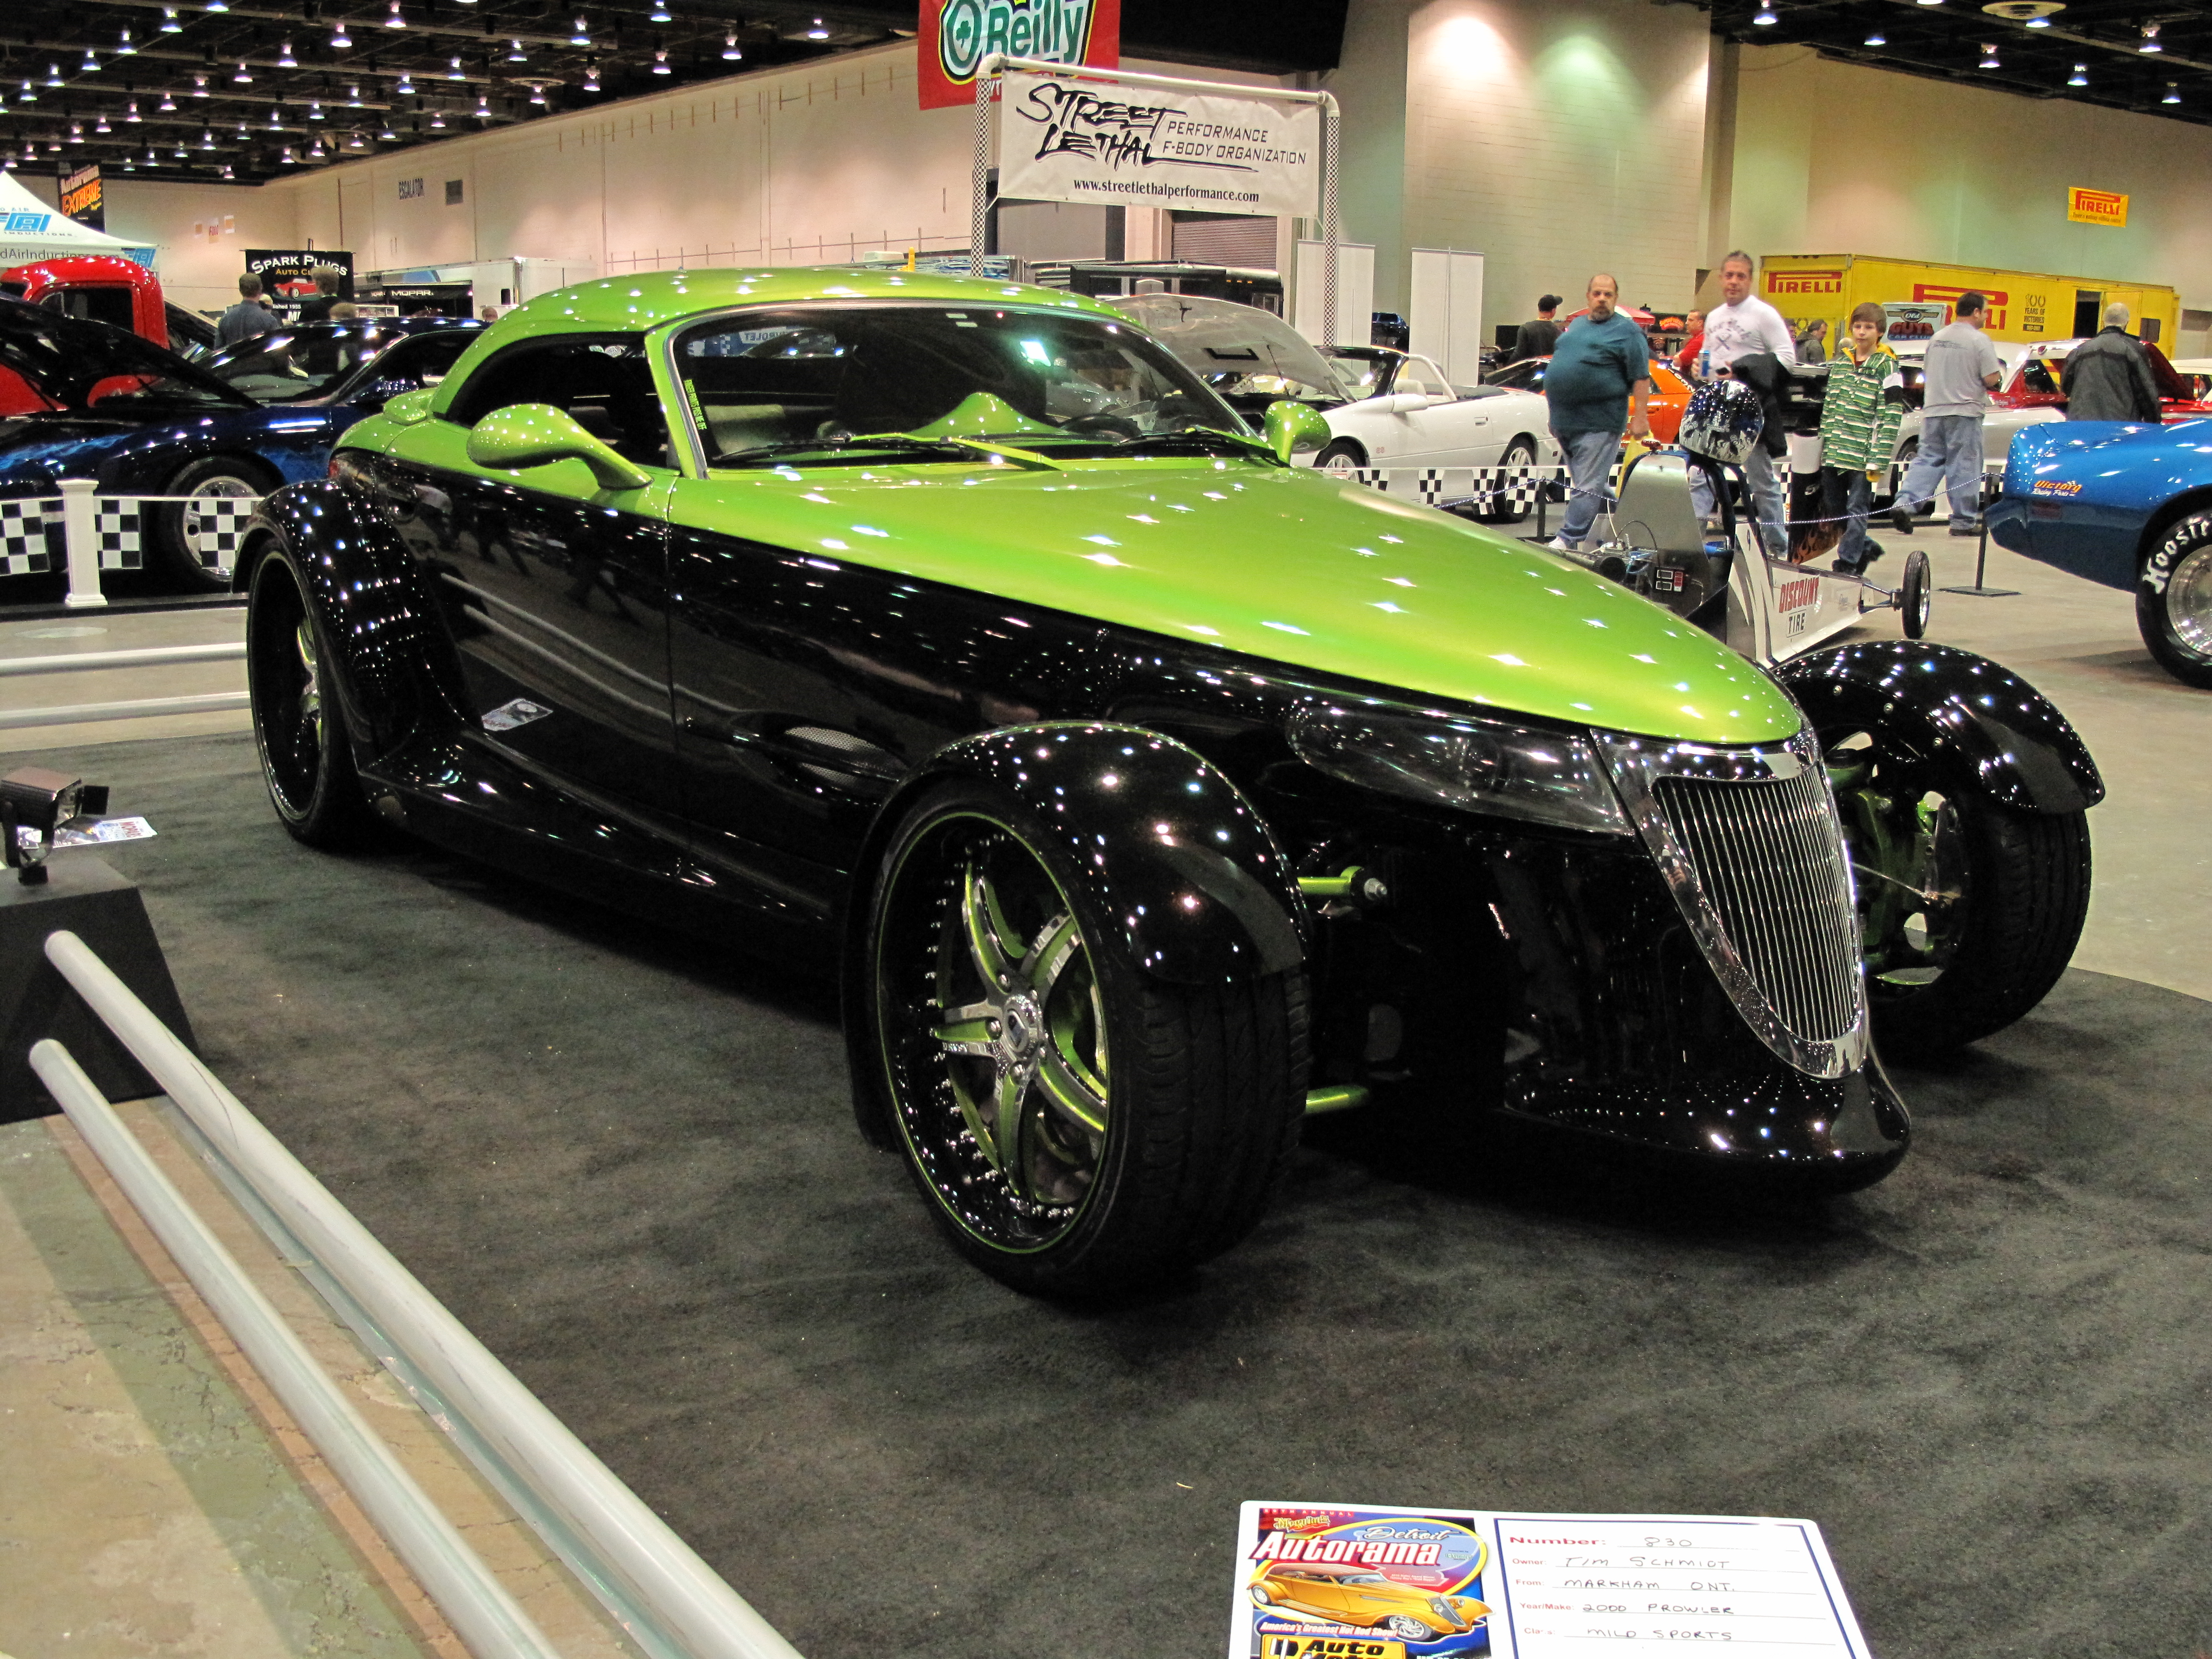 2000 Plymouth Prowler #14